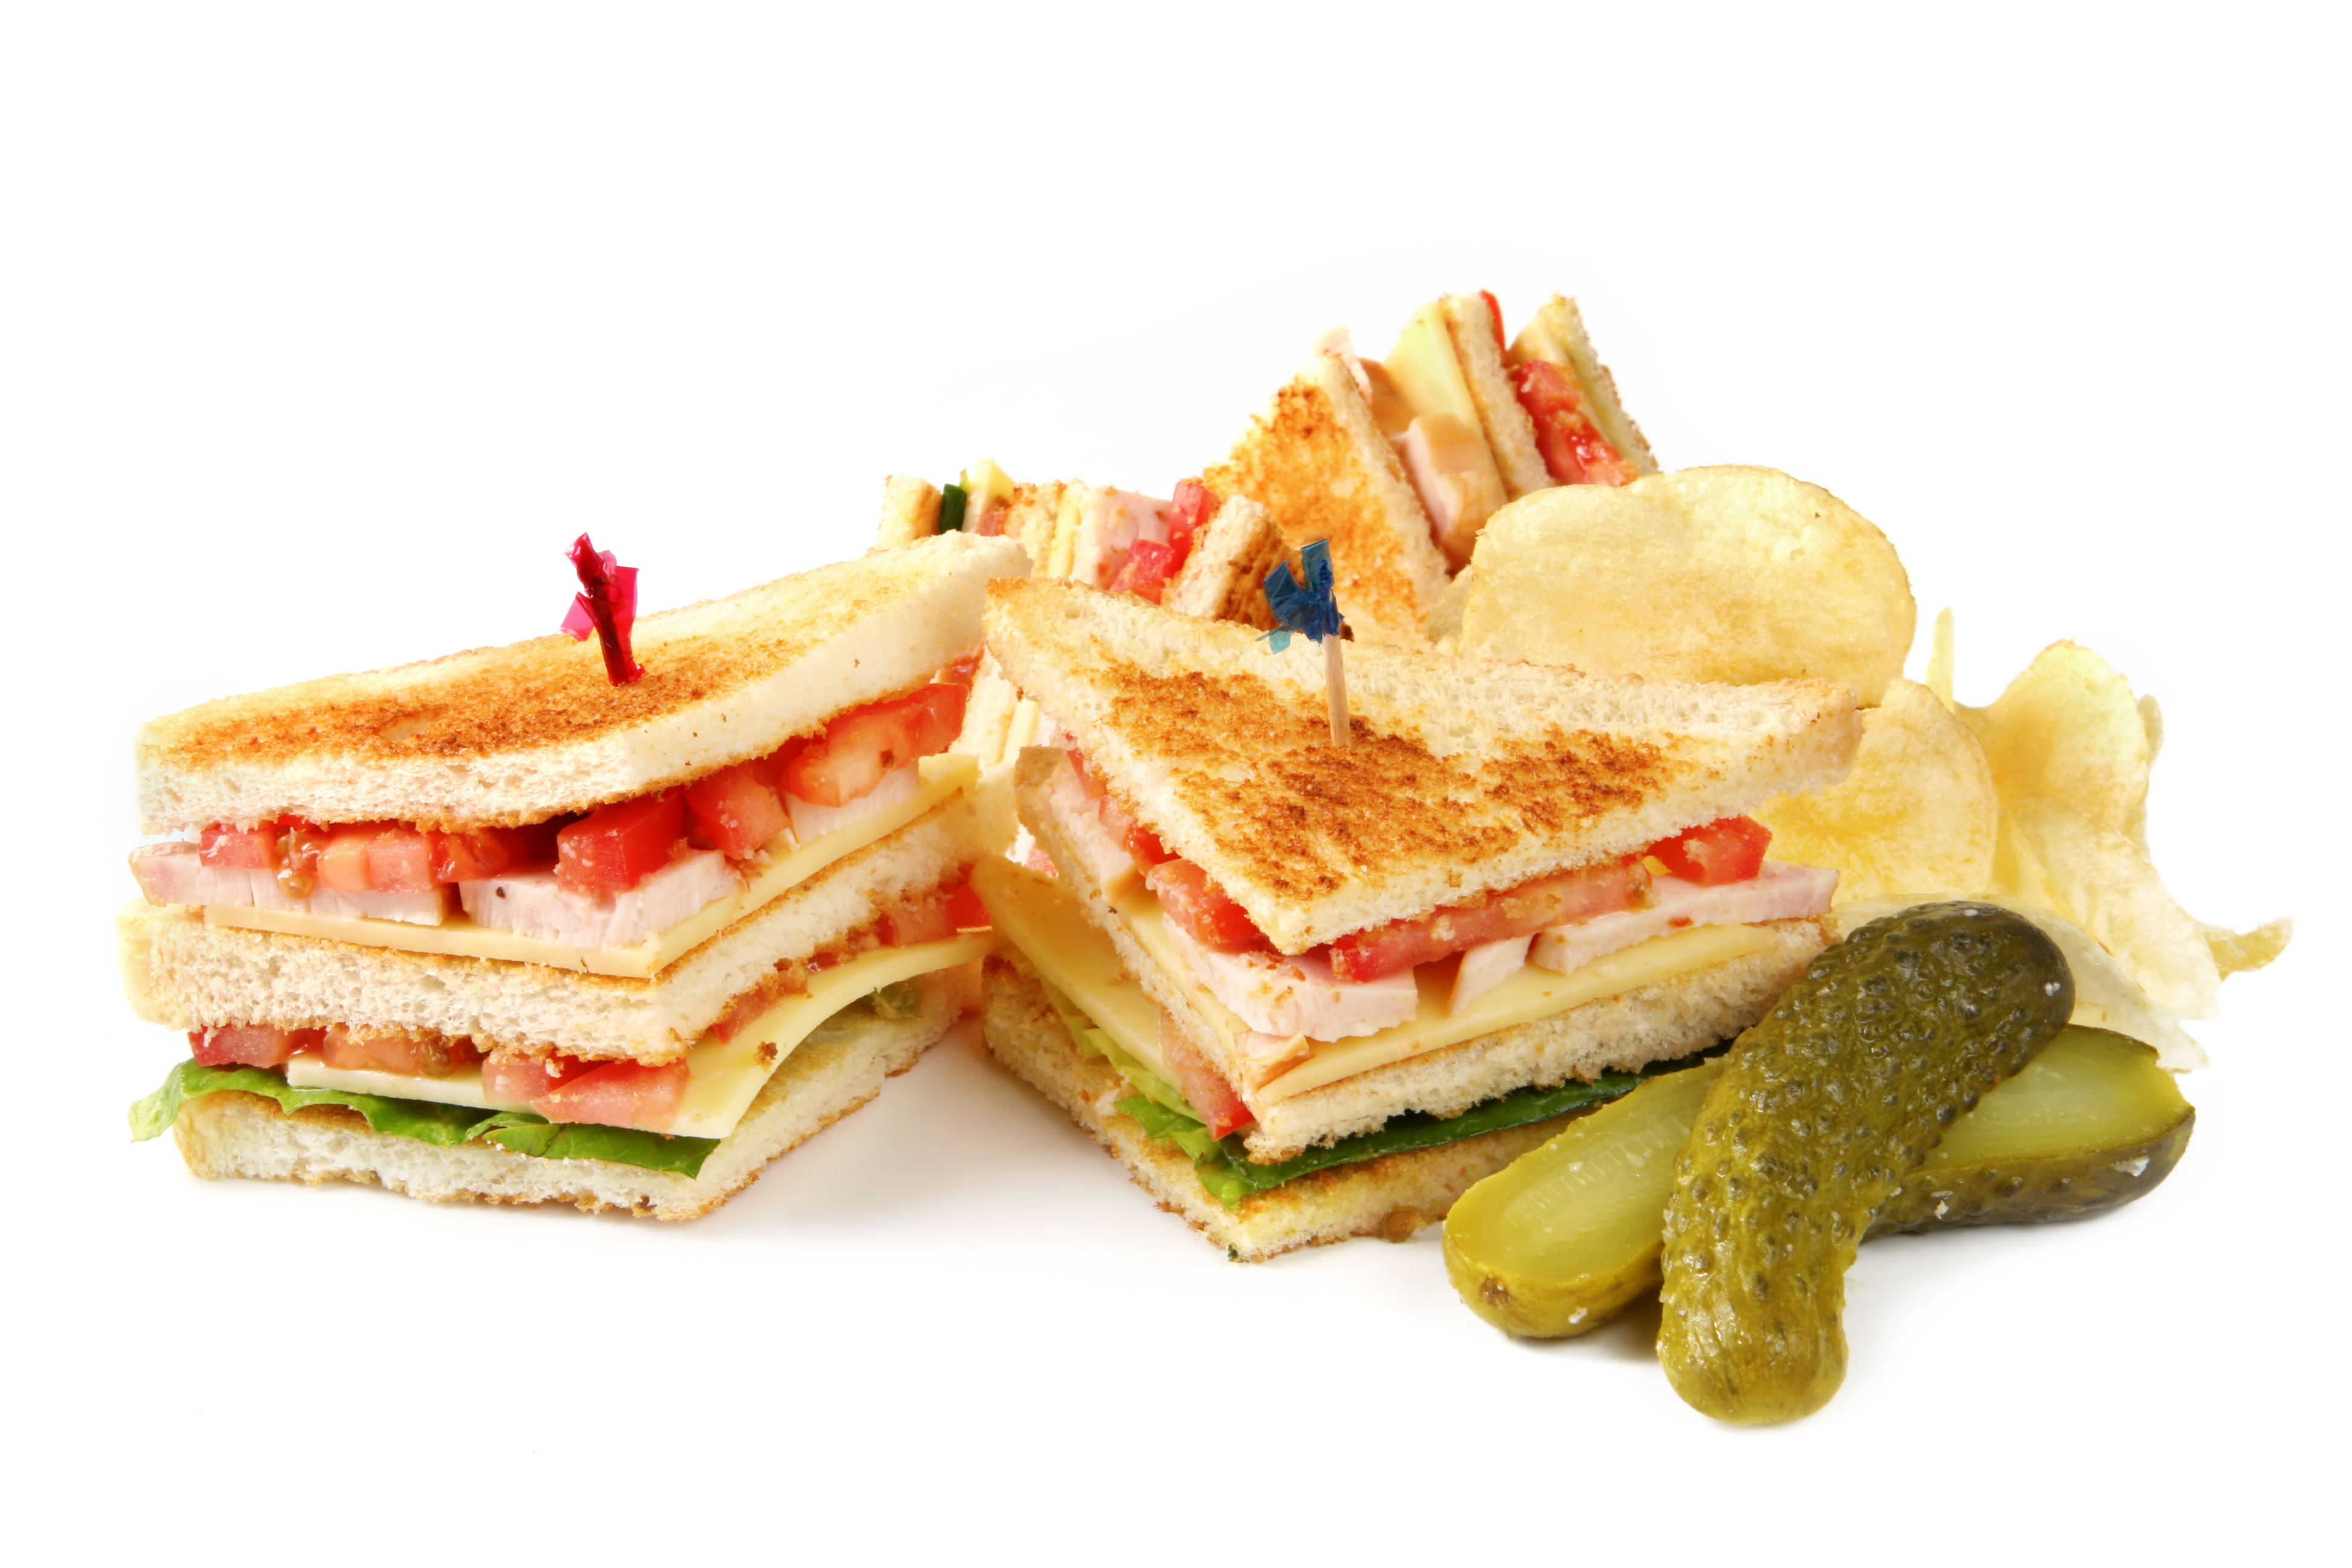 Sandwich with Pickles On the Side